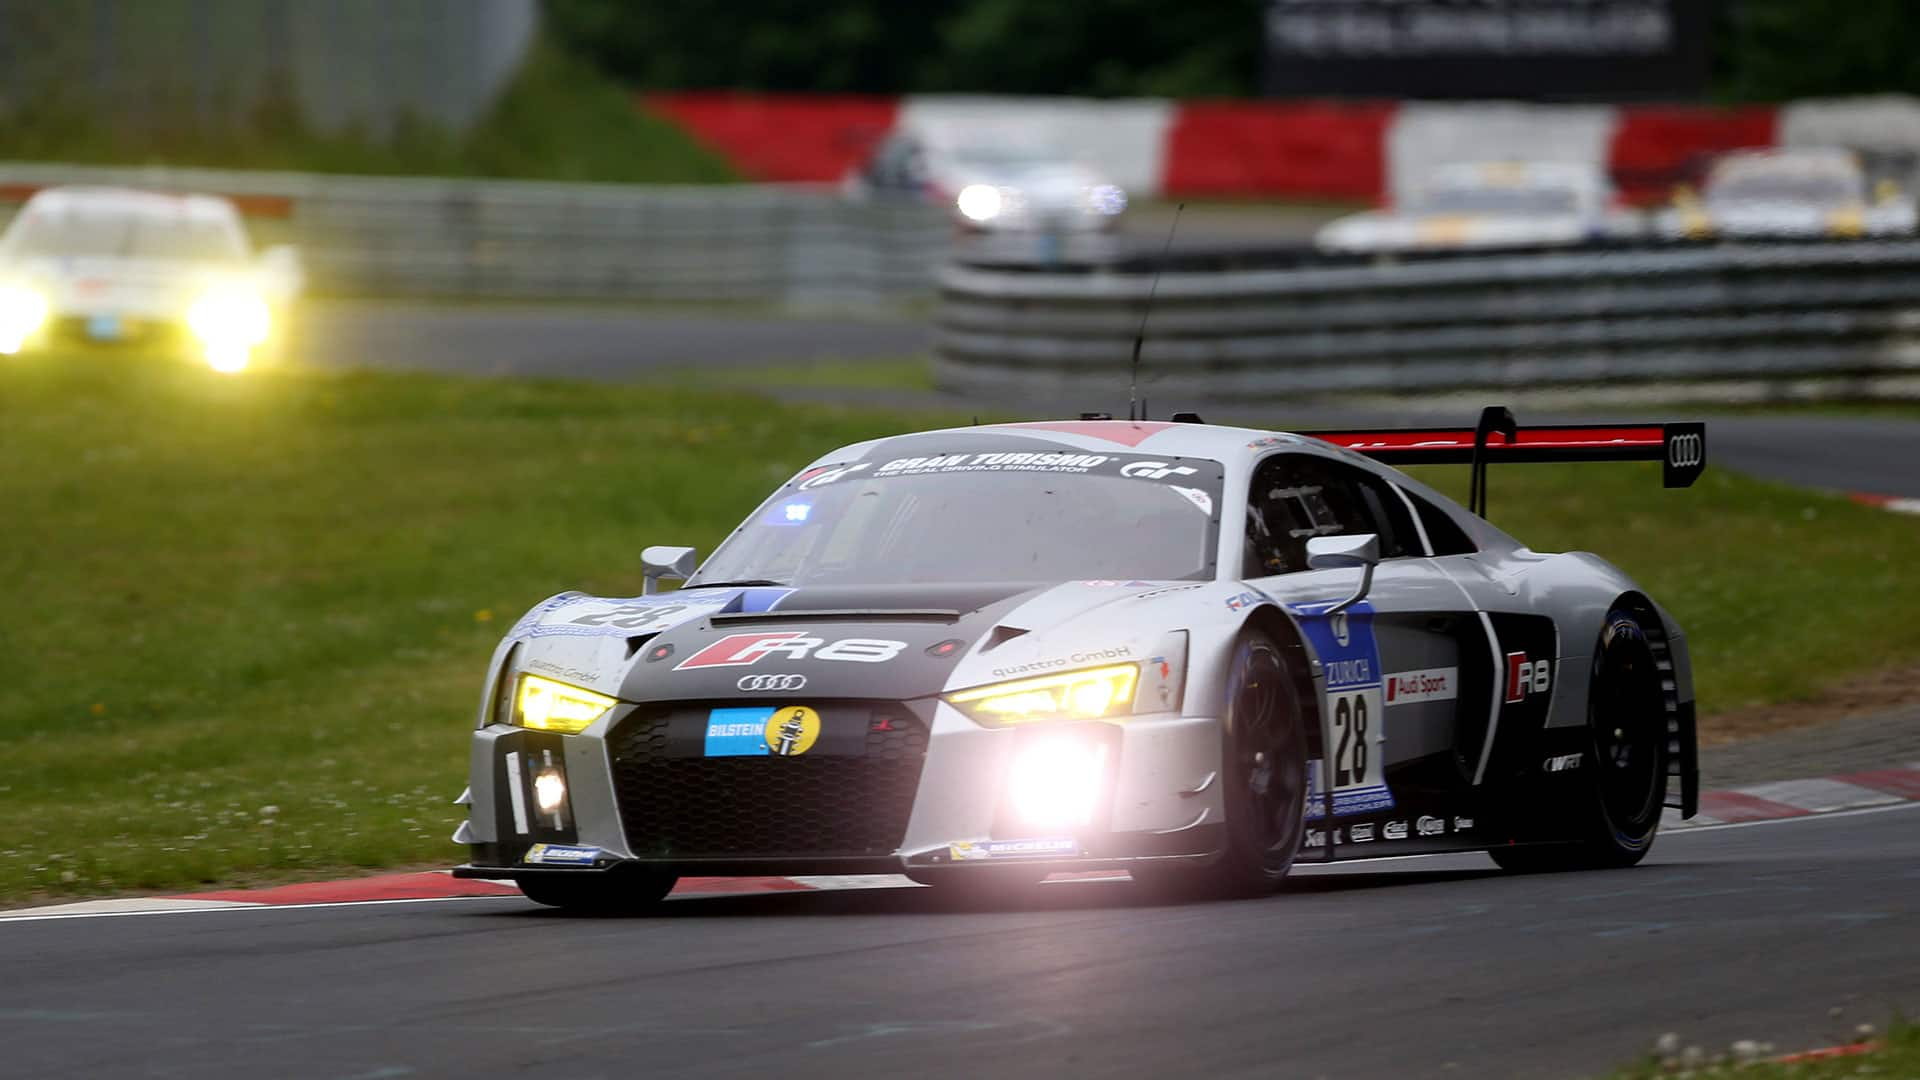 2015: The New Audi R8 LMS Wins The Nürburgring 24 Hours At Its Debut.